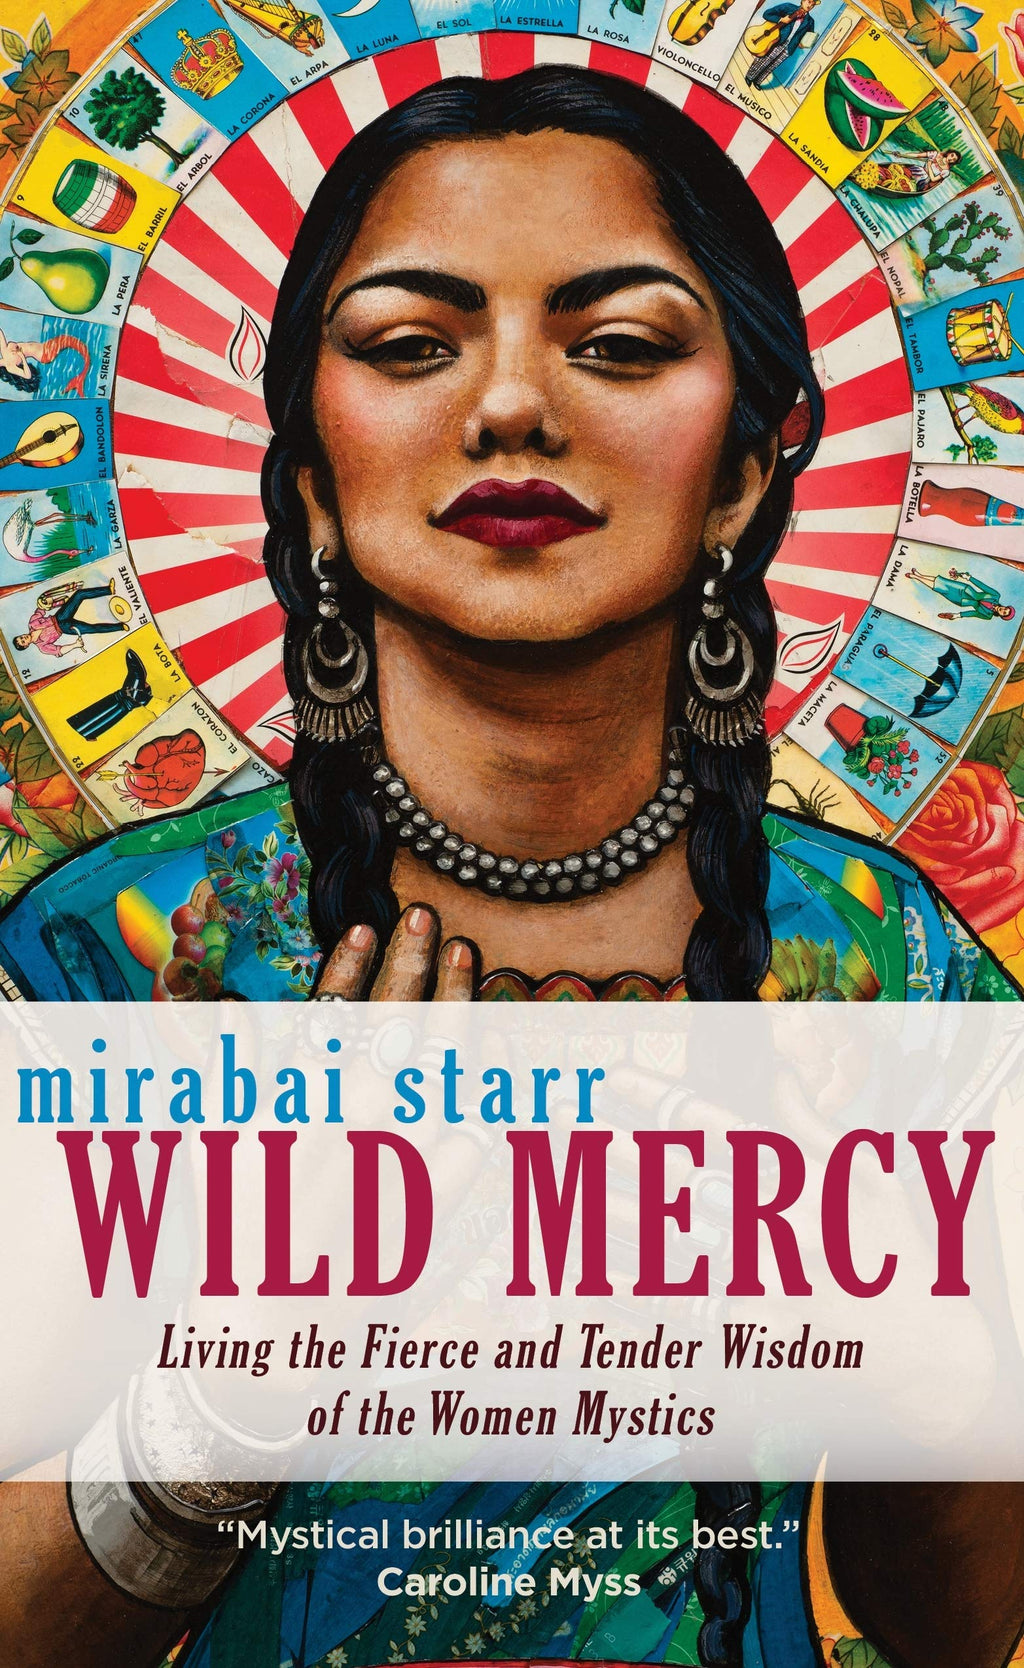 Wild Mercy by Mirabai Starr